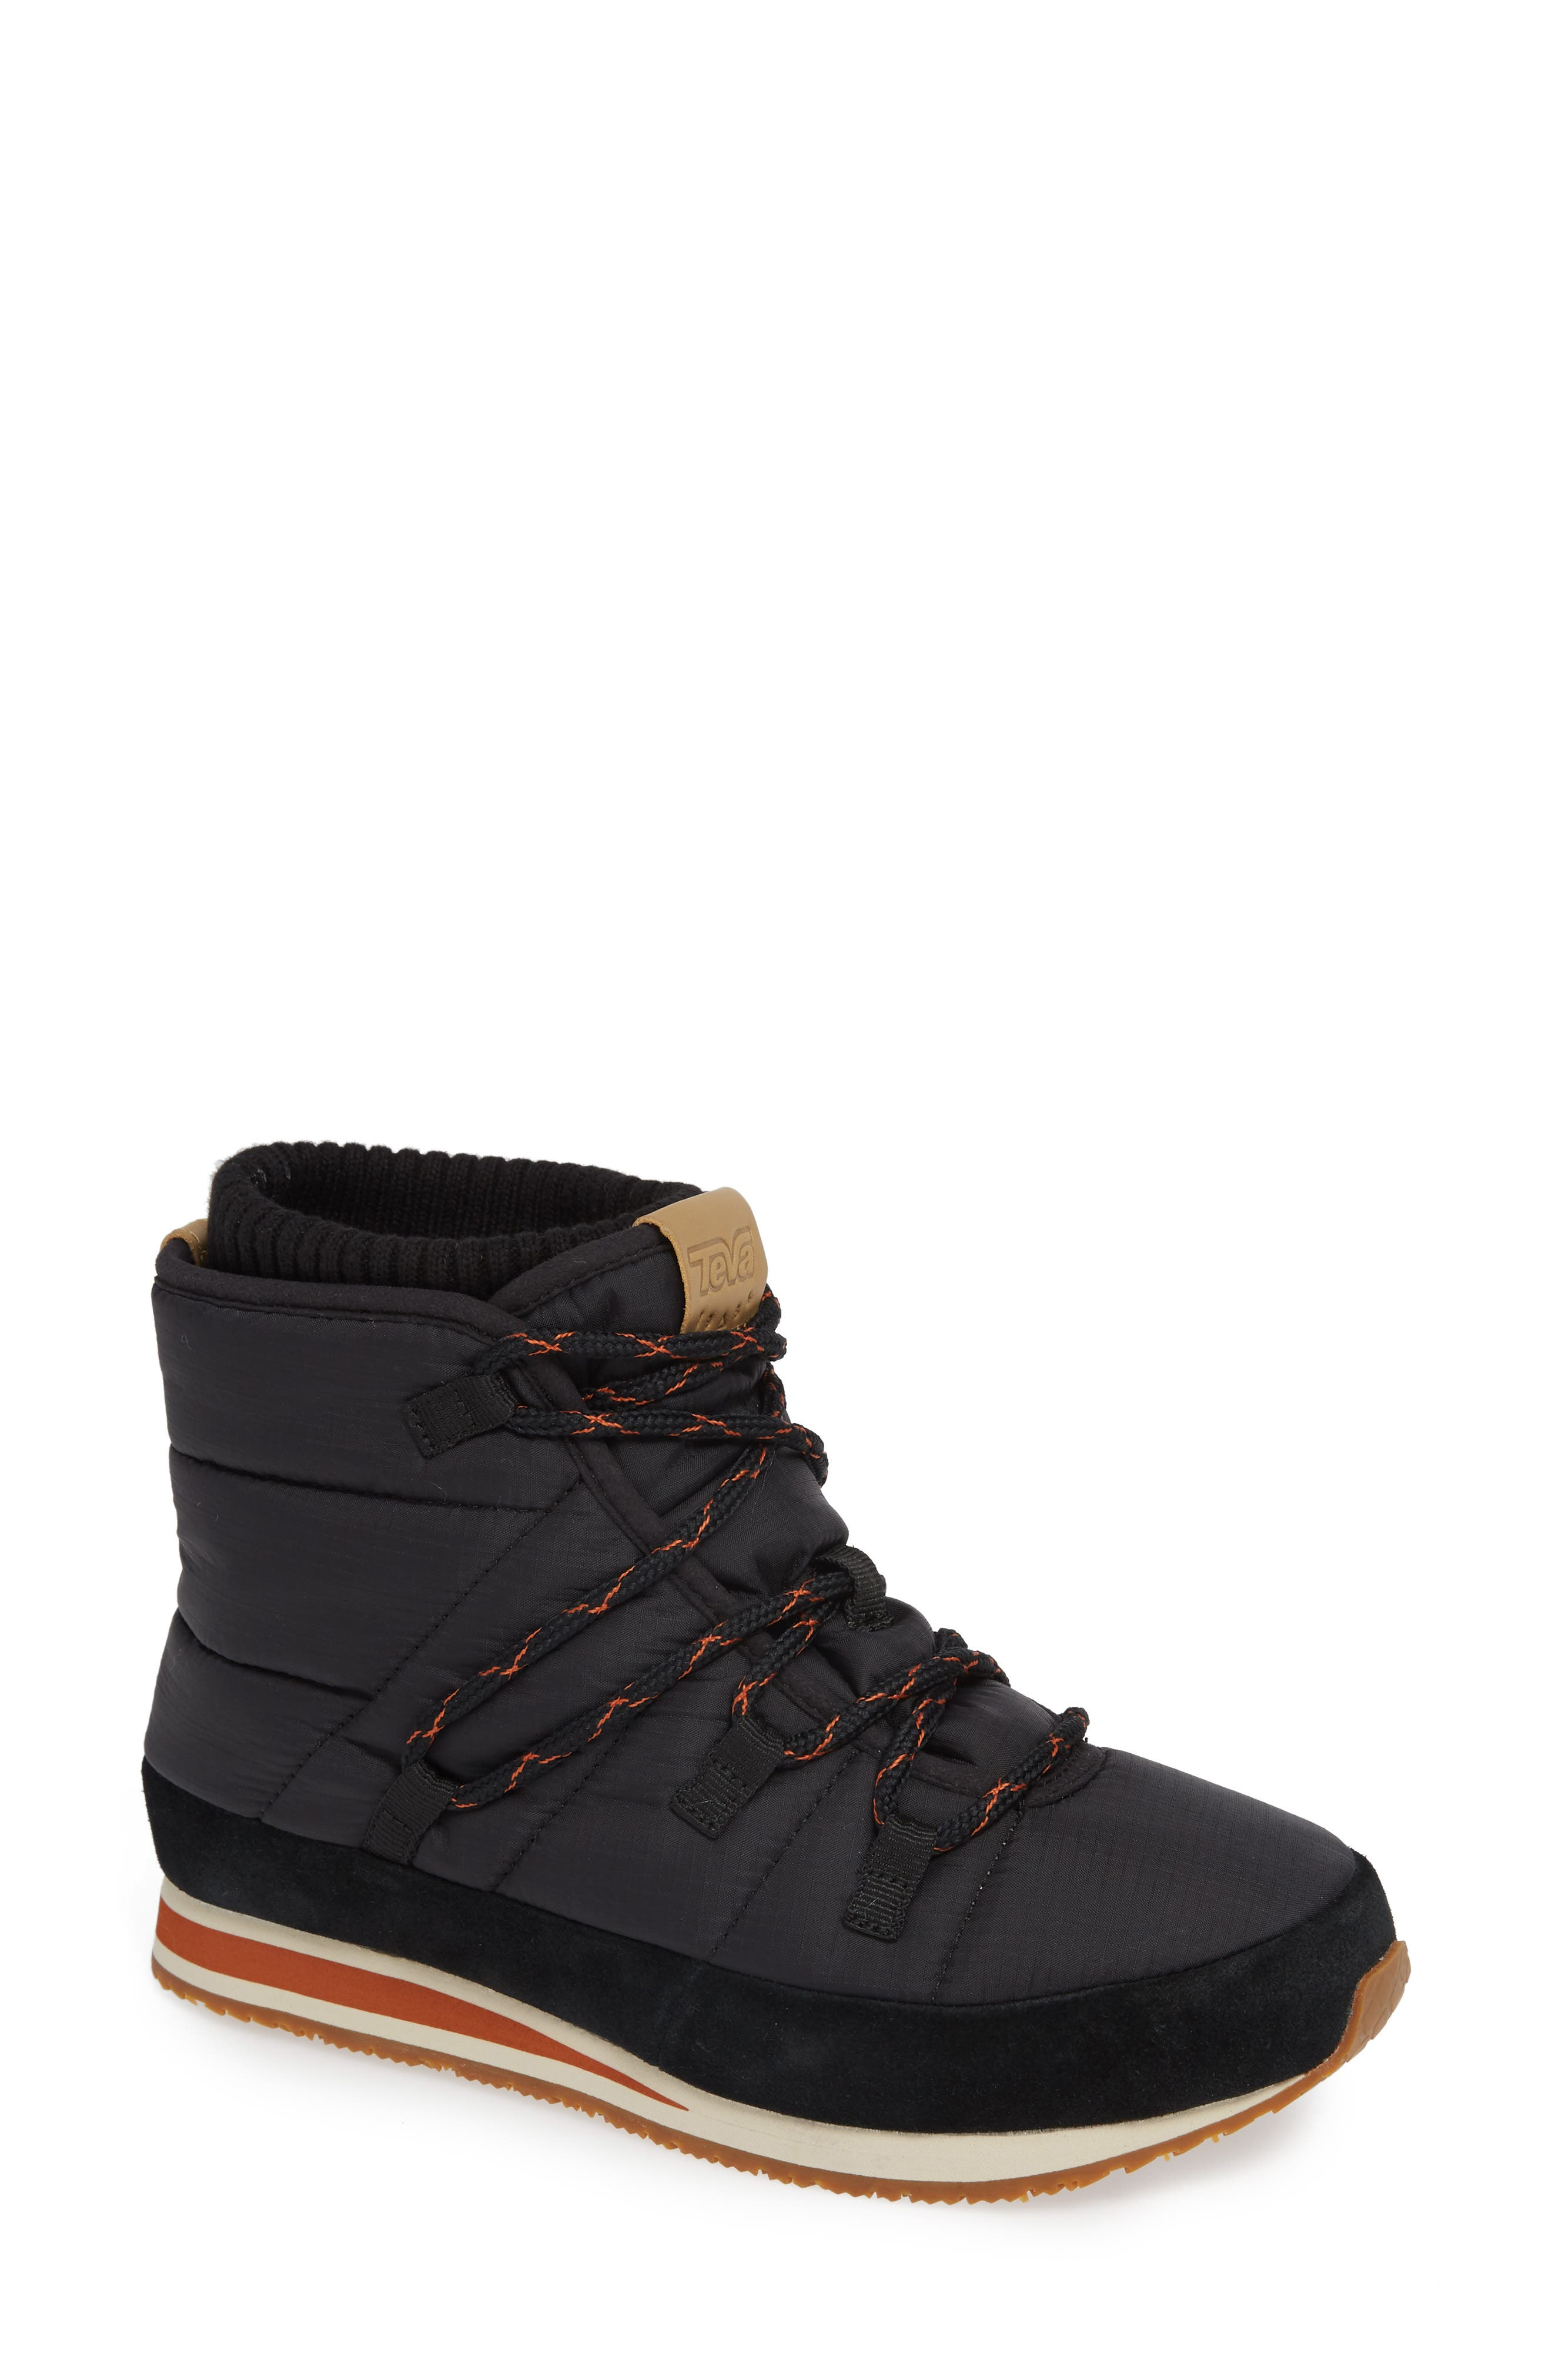 Ember Lace-Up Winter Bootie,                             Main thumbnail 1, color,                             BLACK FABRIC